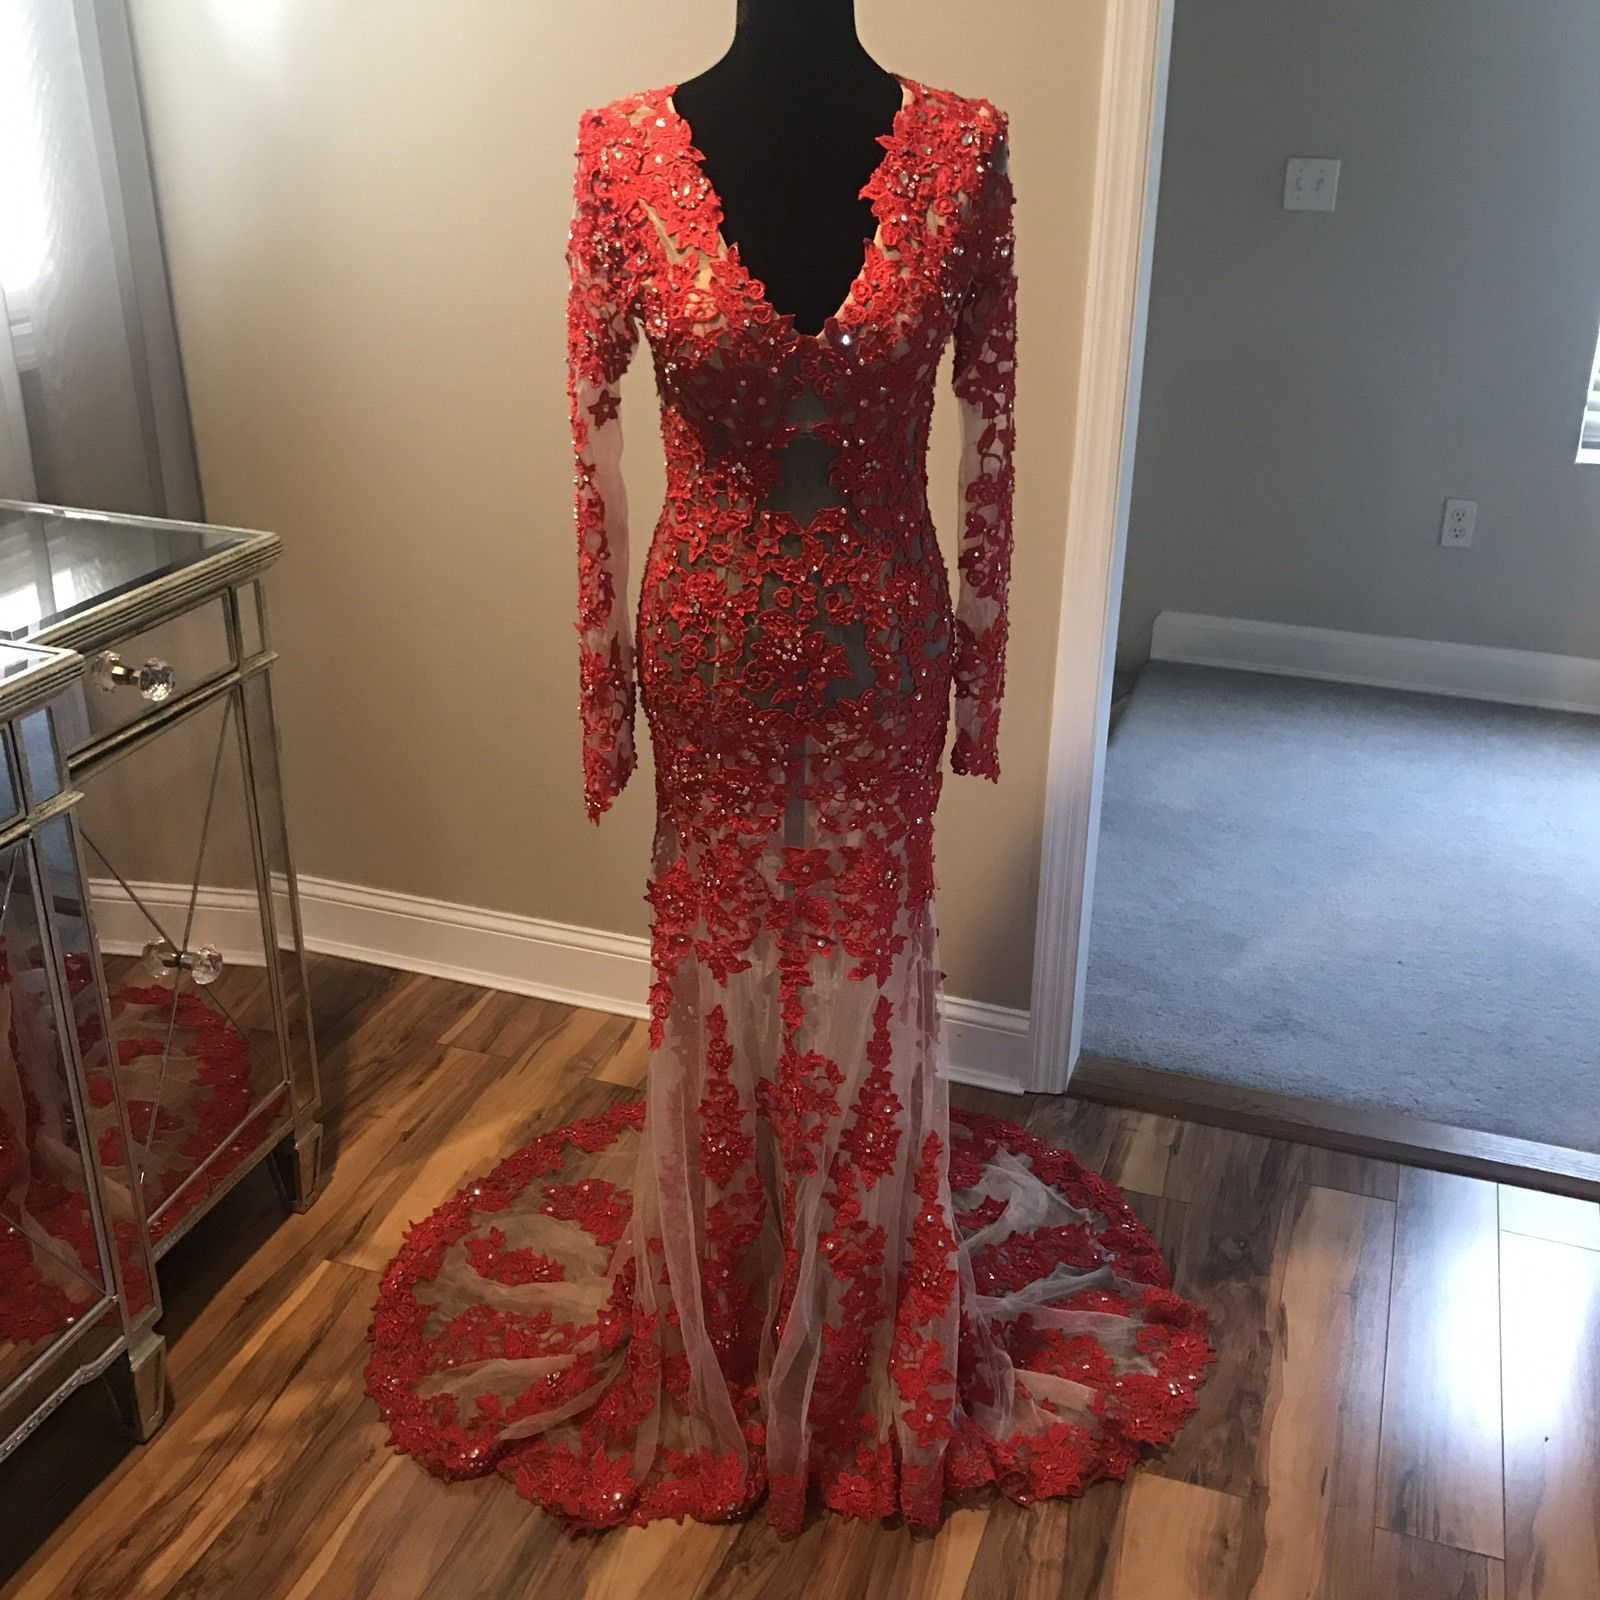 Awesome awesome claudine alyce paris long sleeve red prom dress sz